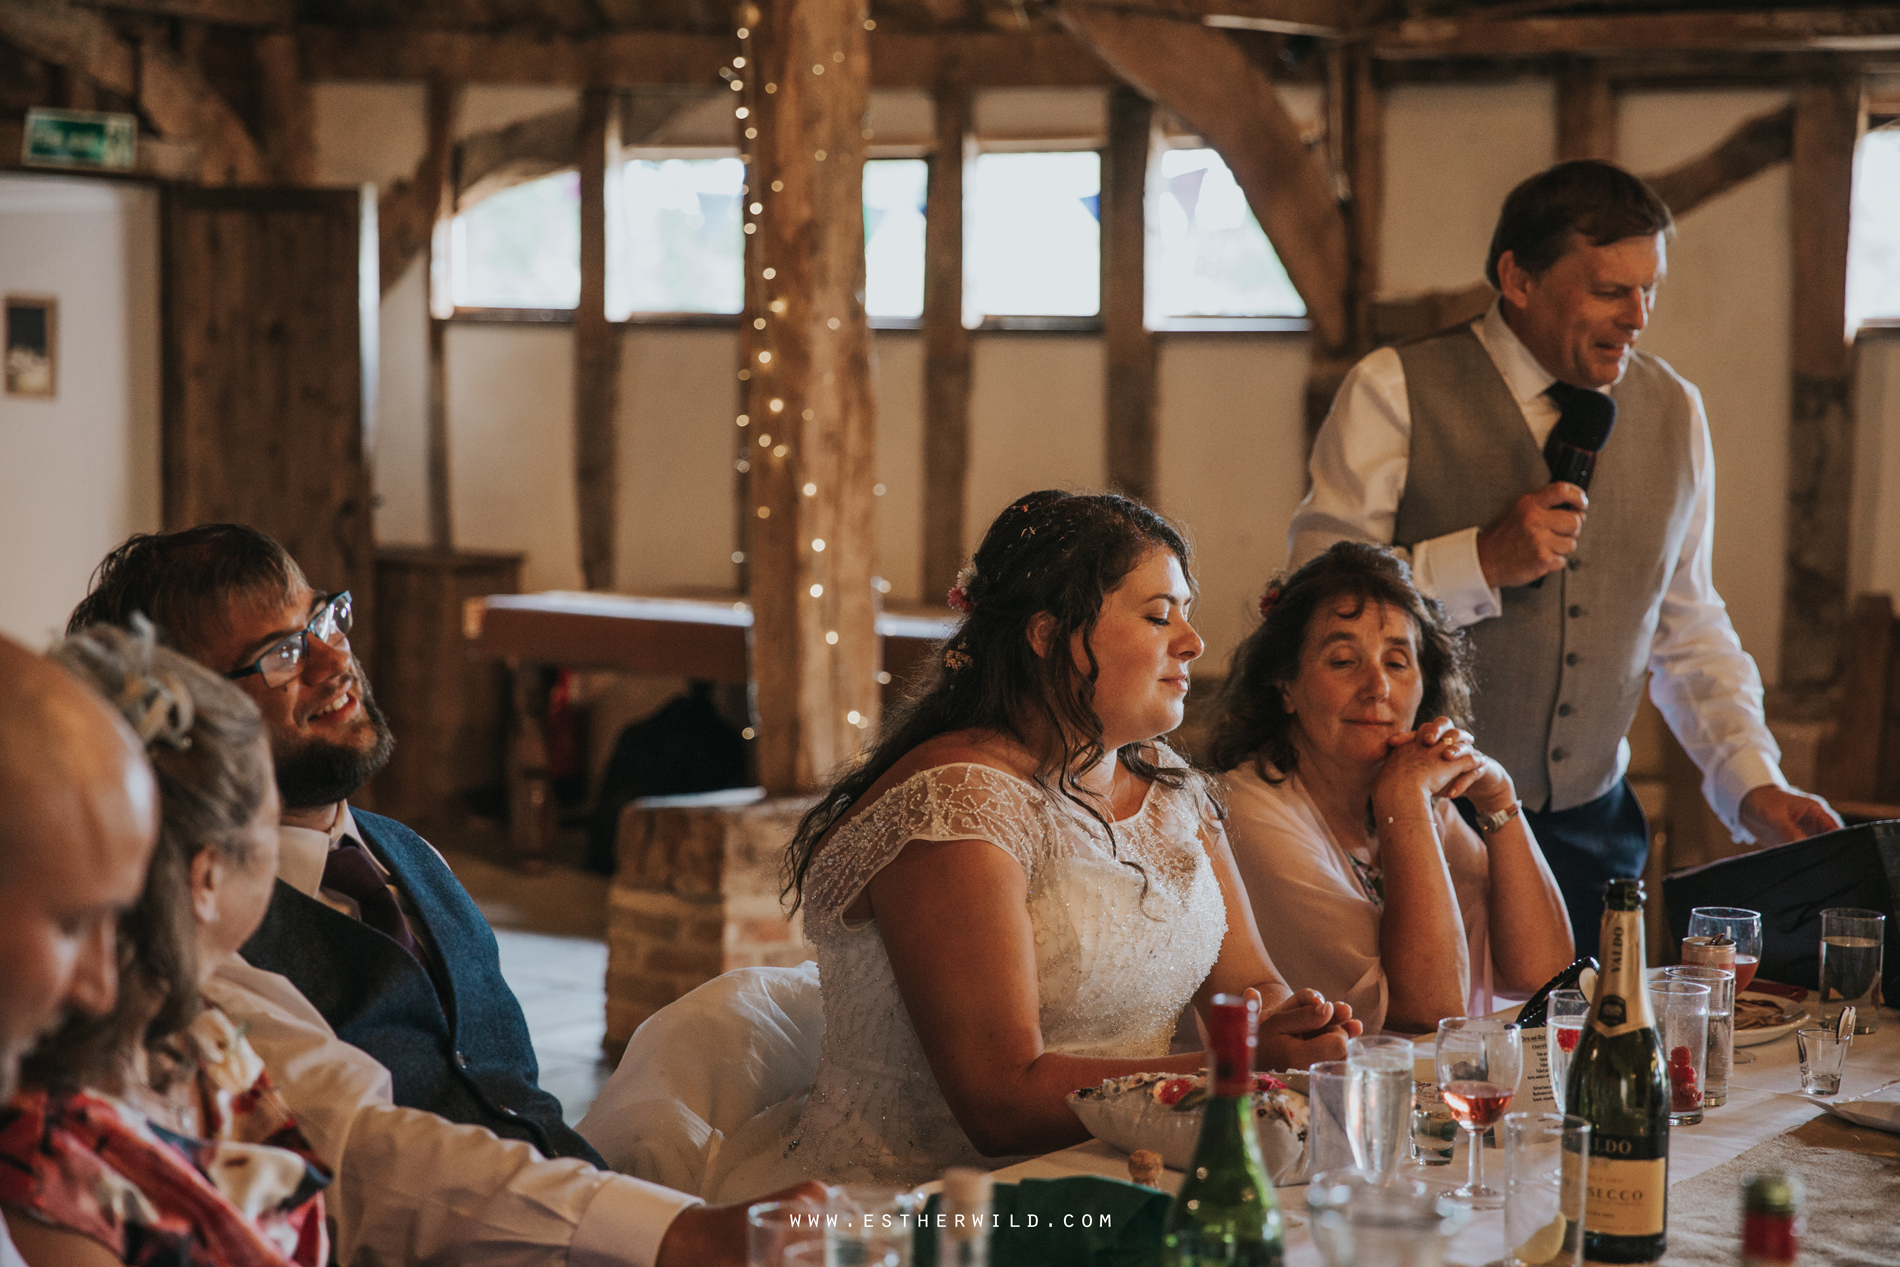 The_Red_Barn_Wedding_Kings_Lynn_Norfolk_IMG_1676.jpg